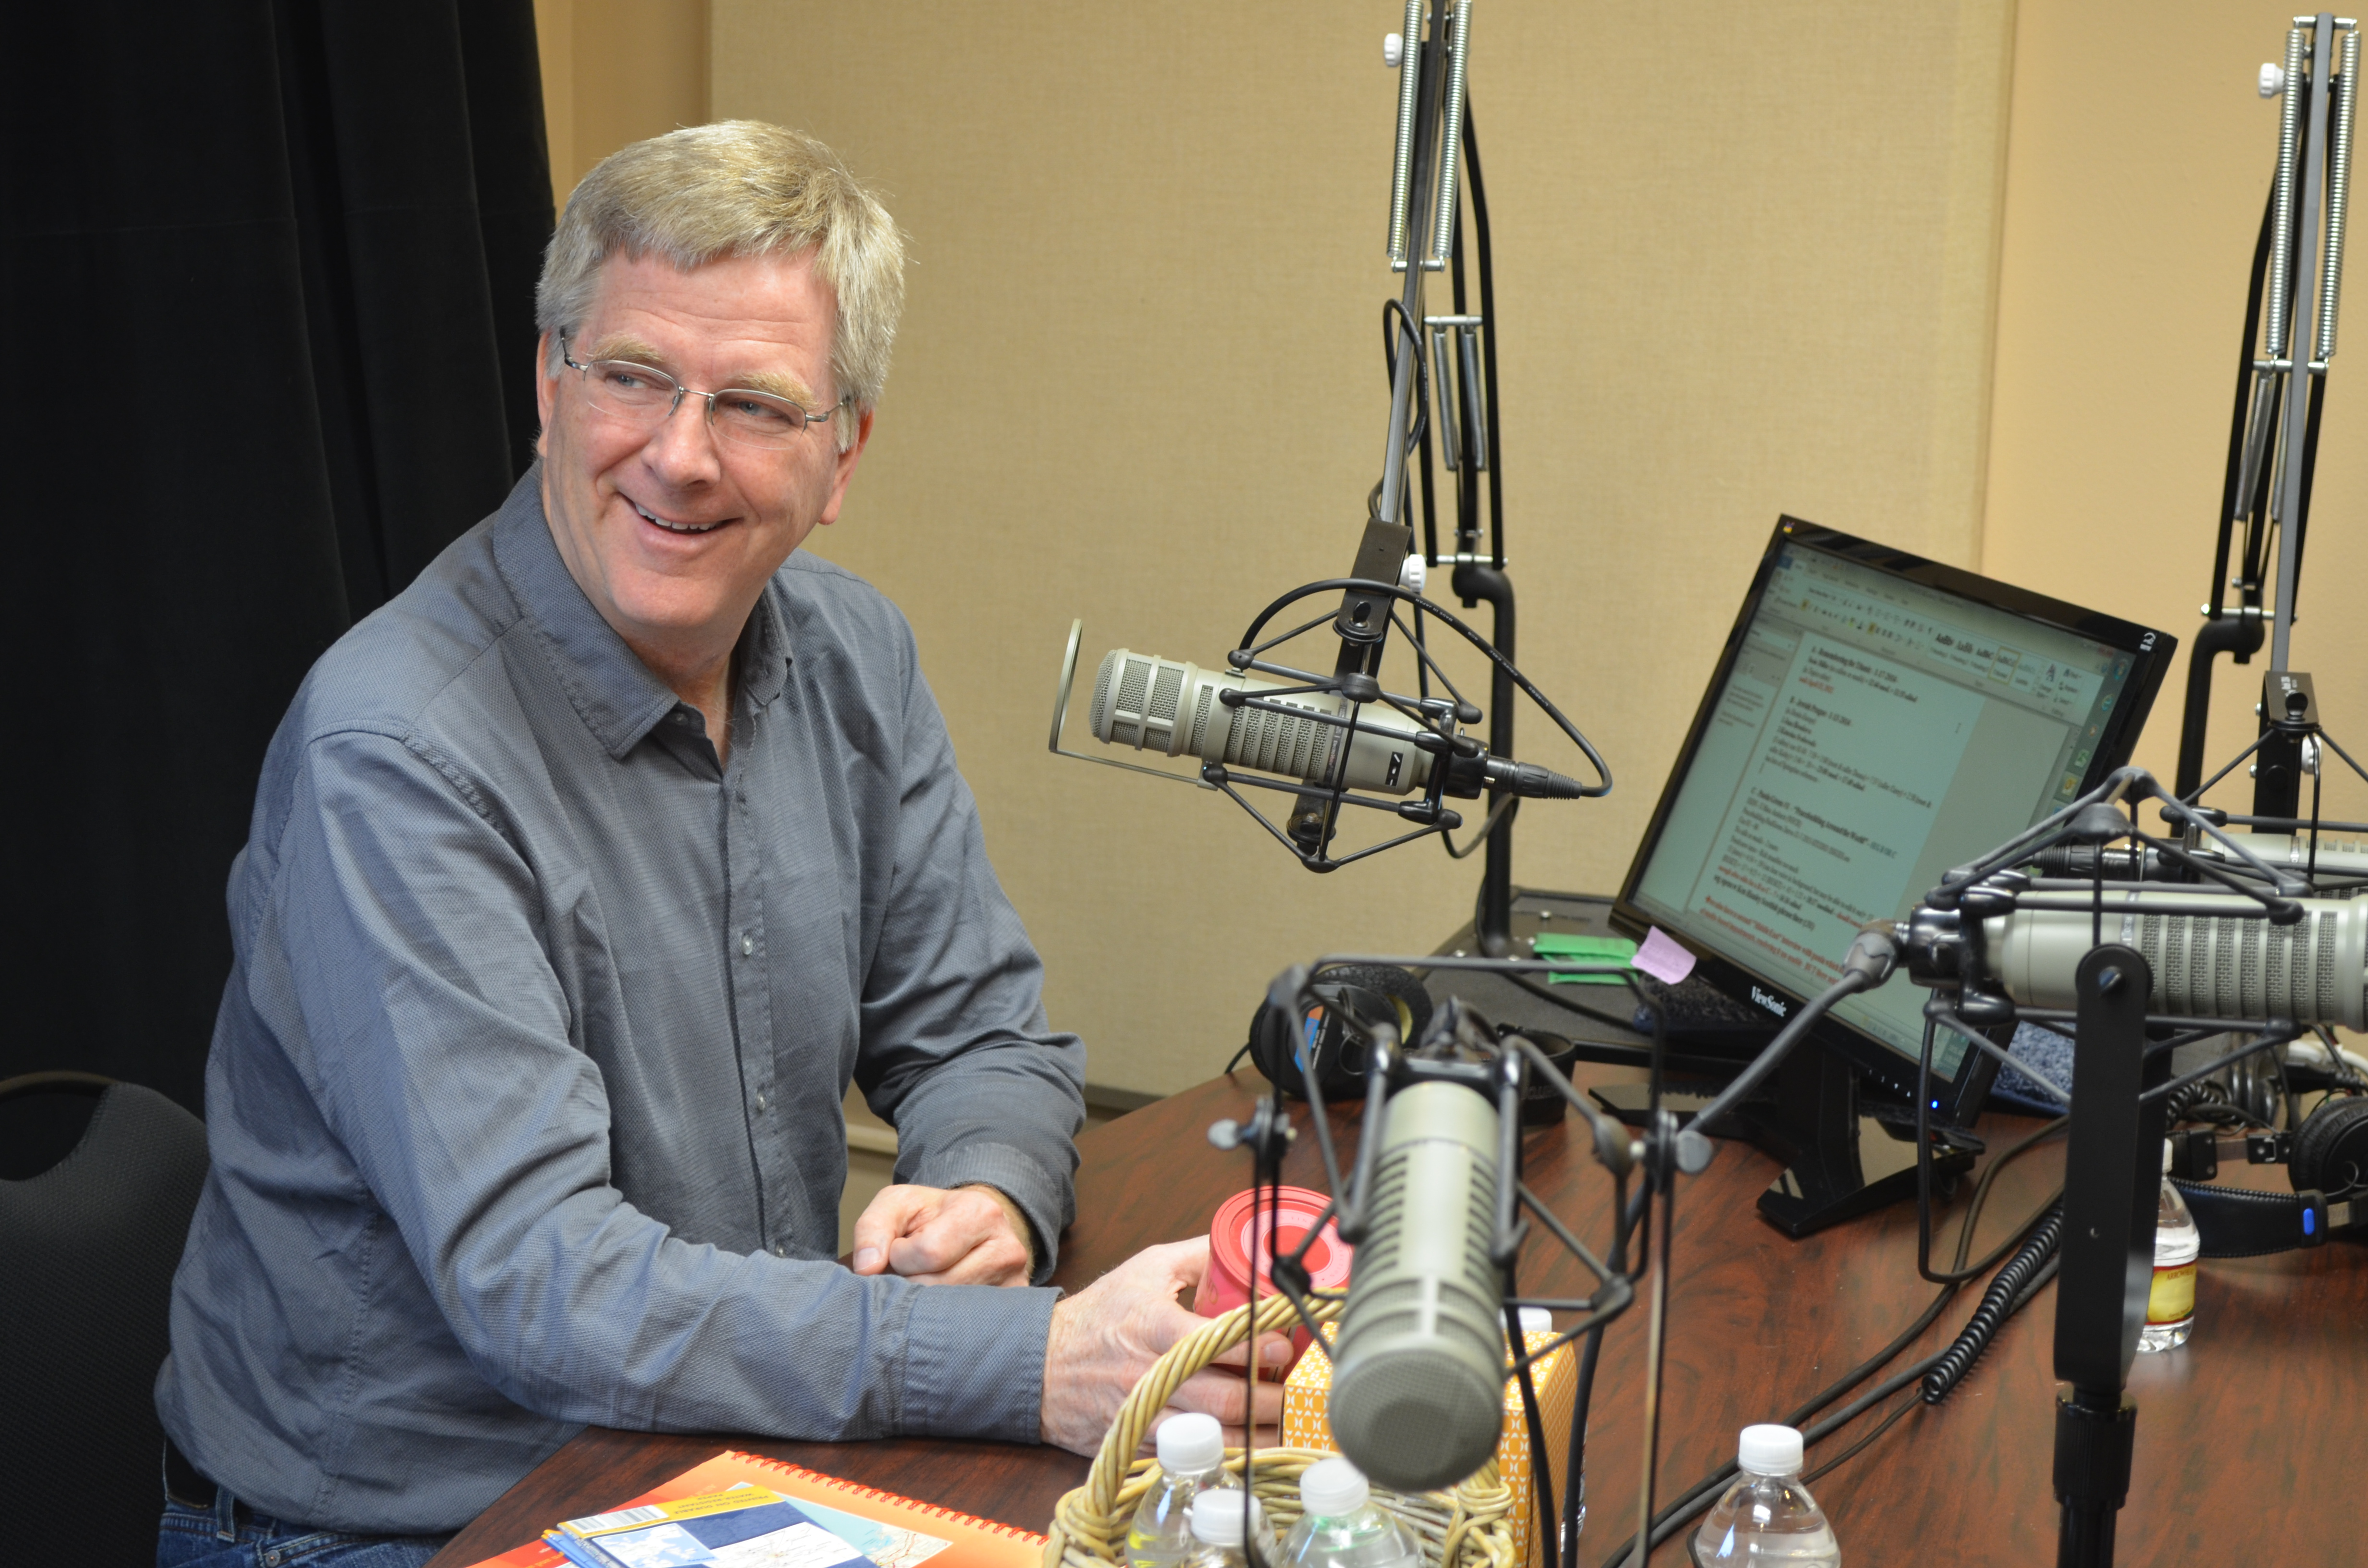 Travel Expert and BSW friend, Rick Steves